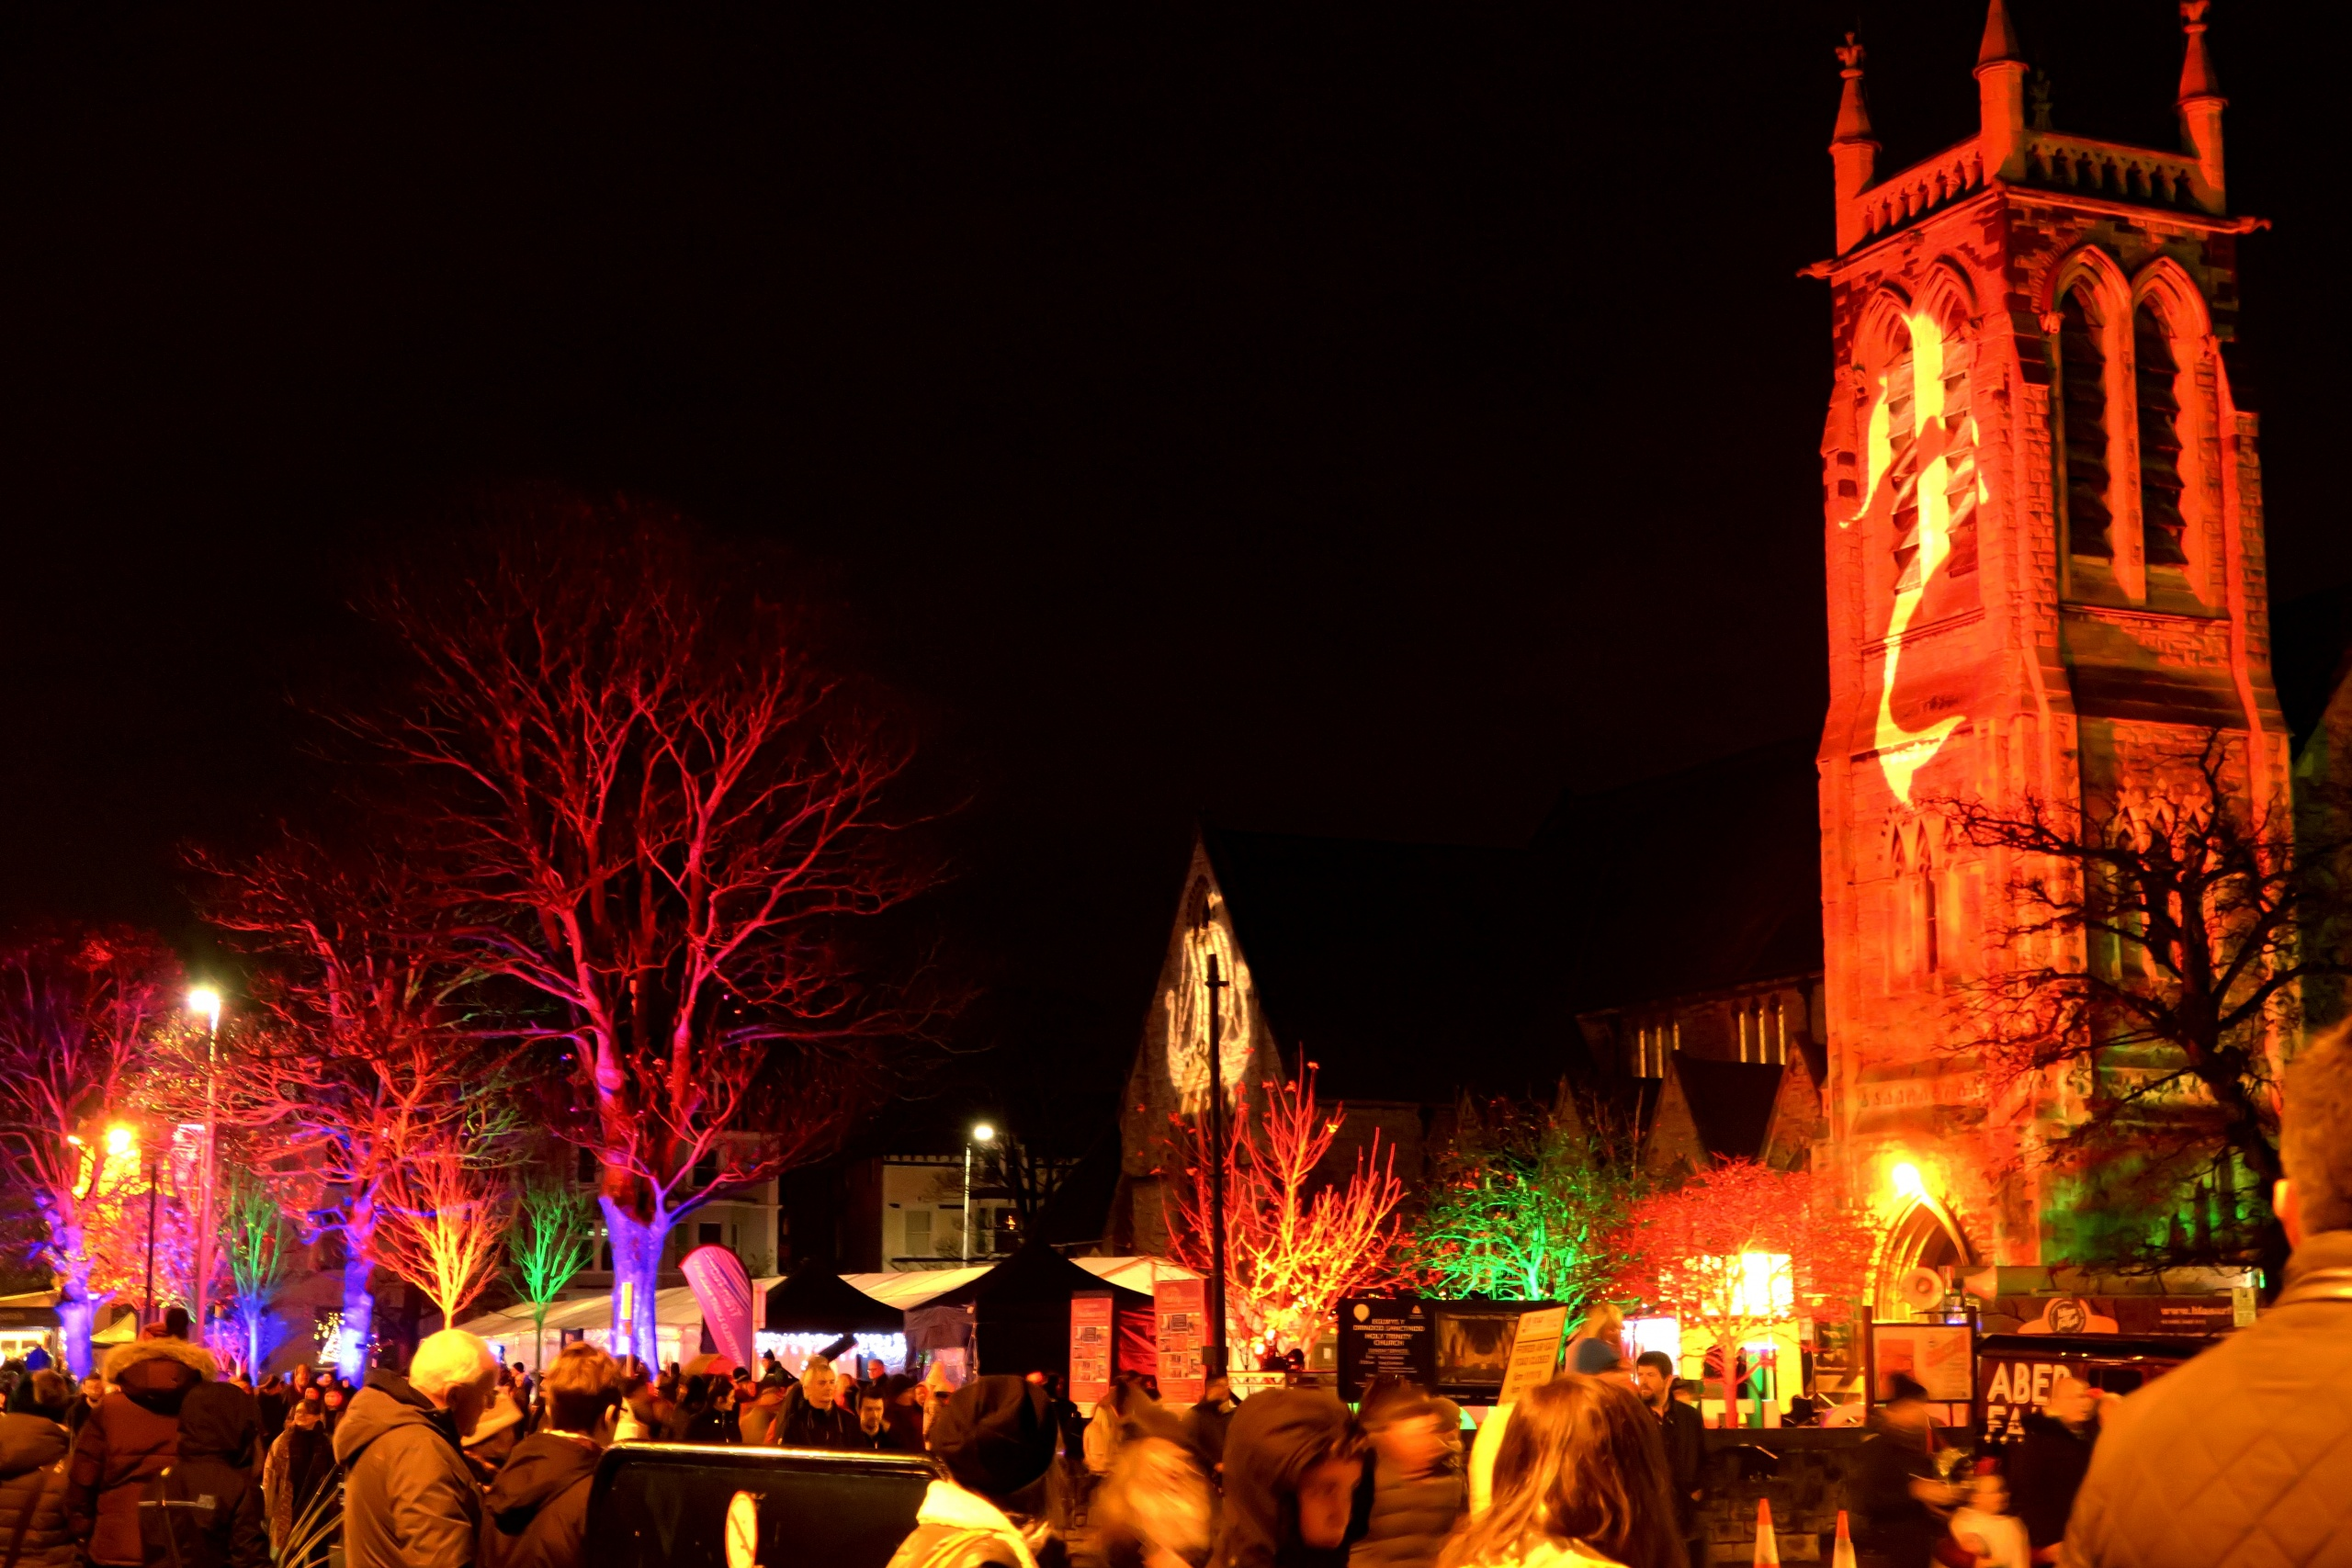 Coloured outdoor lighting and gobo projection at the Llandudno Winter Light / Golau Gaeaf event, in North Wales. The tower of Holy Trinity Church on Mostyn Street is illuminated in red with a white gobo of a mermaid. The trees are lit in magenta and blue.